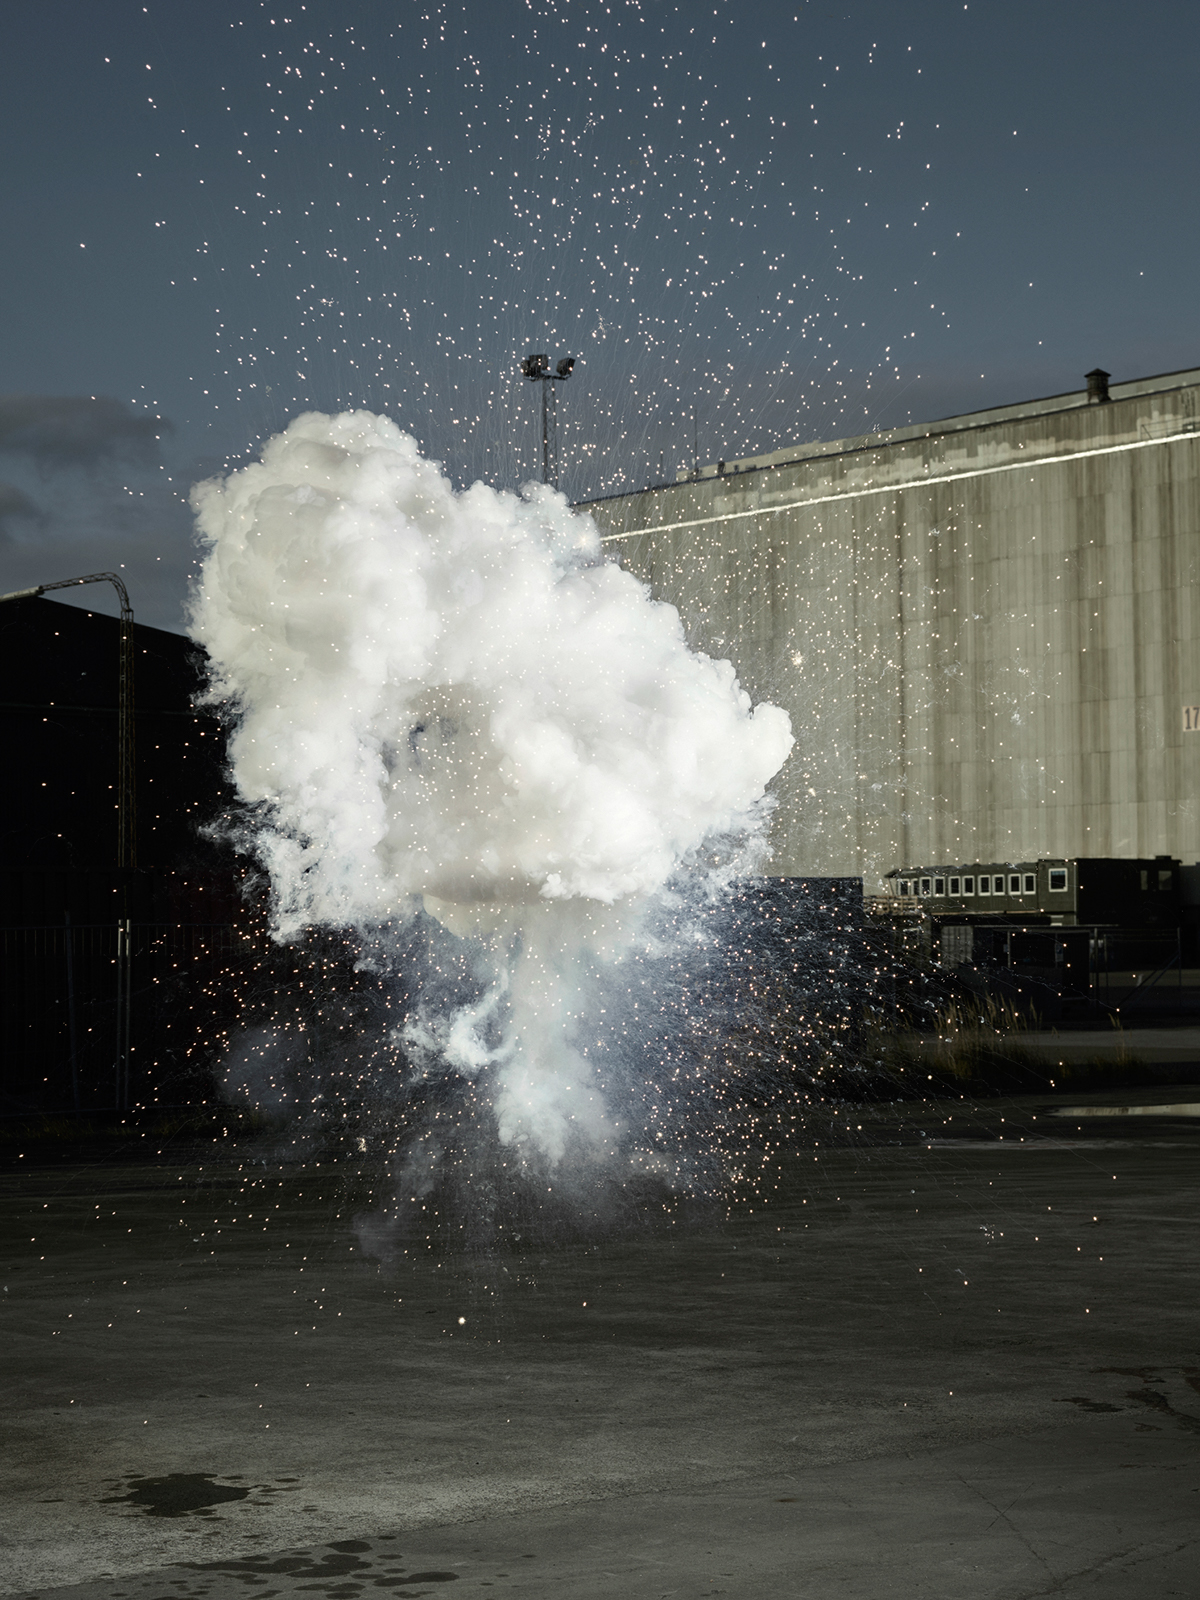 Photographic Series Explosion 2.0 from Ken Hermann